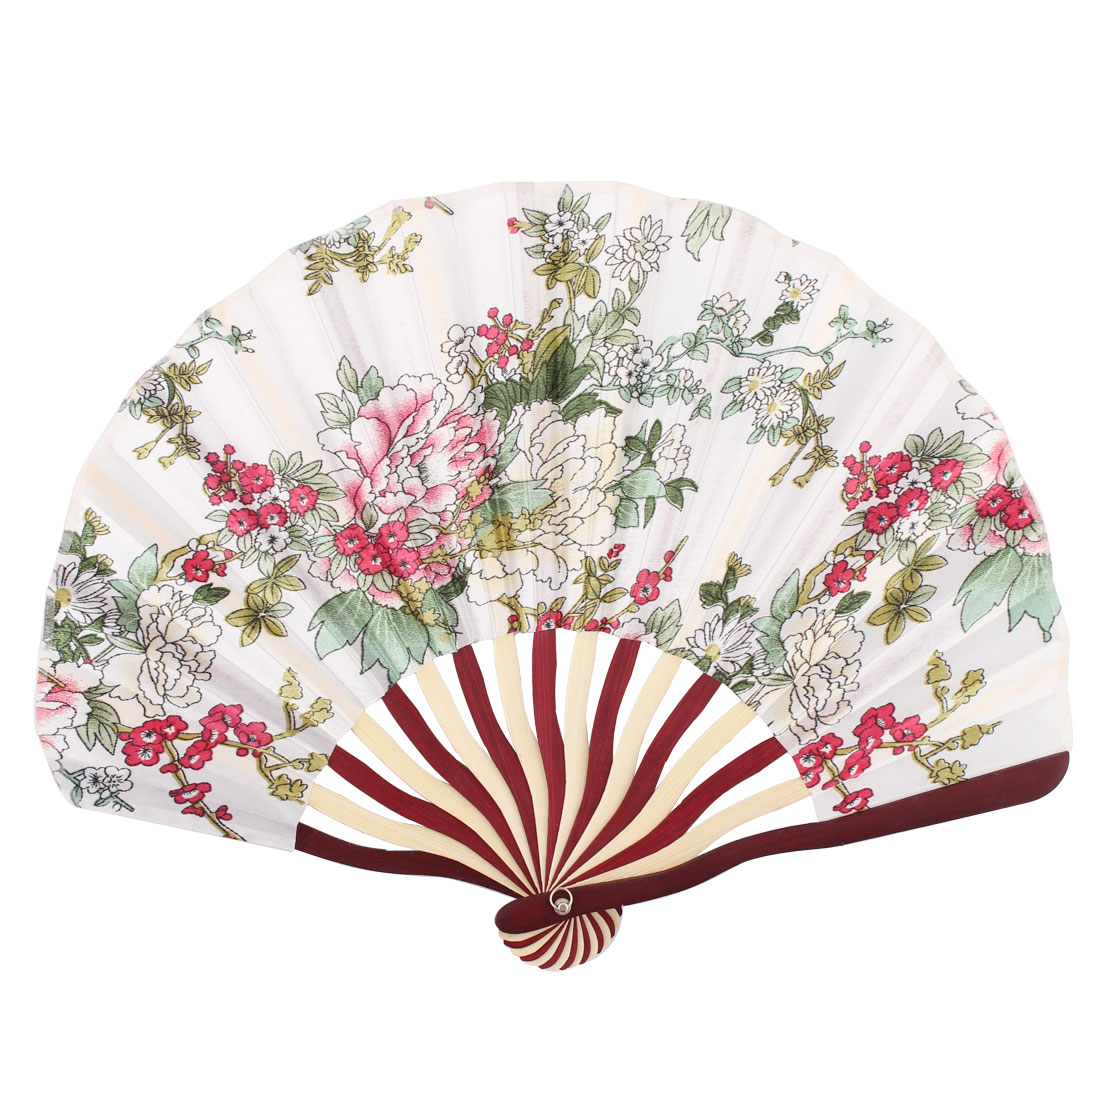 Lady Bamboo Frame Flower Pattern Dance Wedding Party Folding Hand Fan White